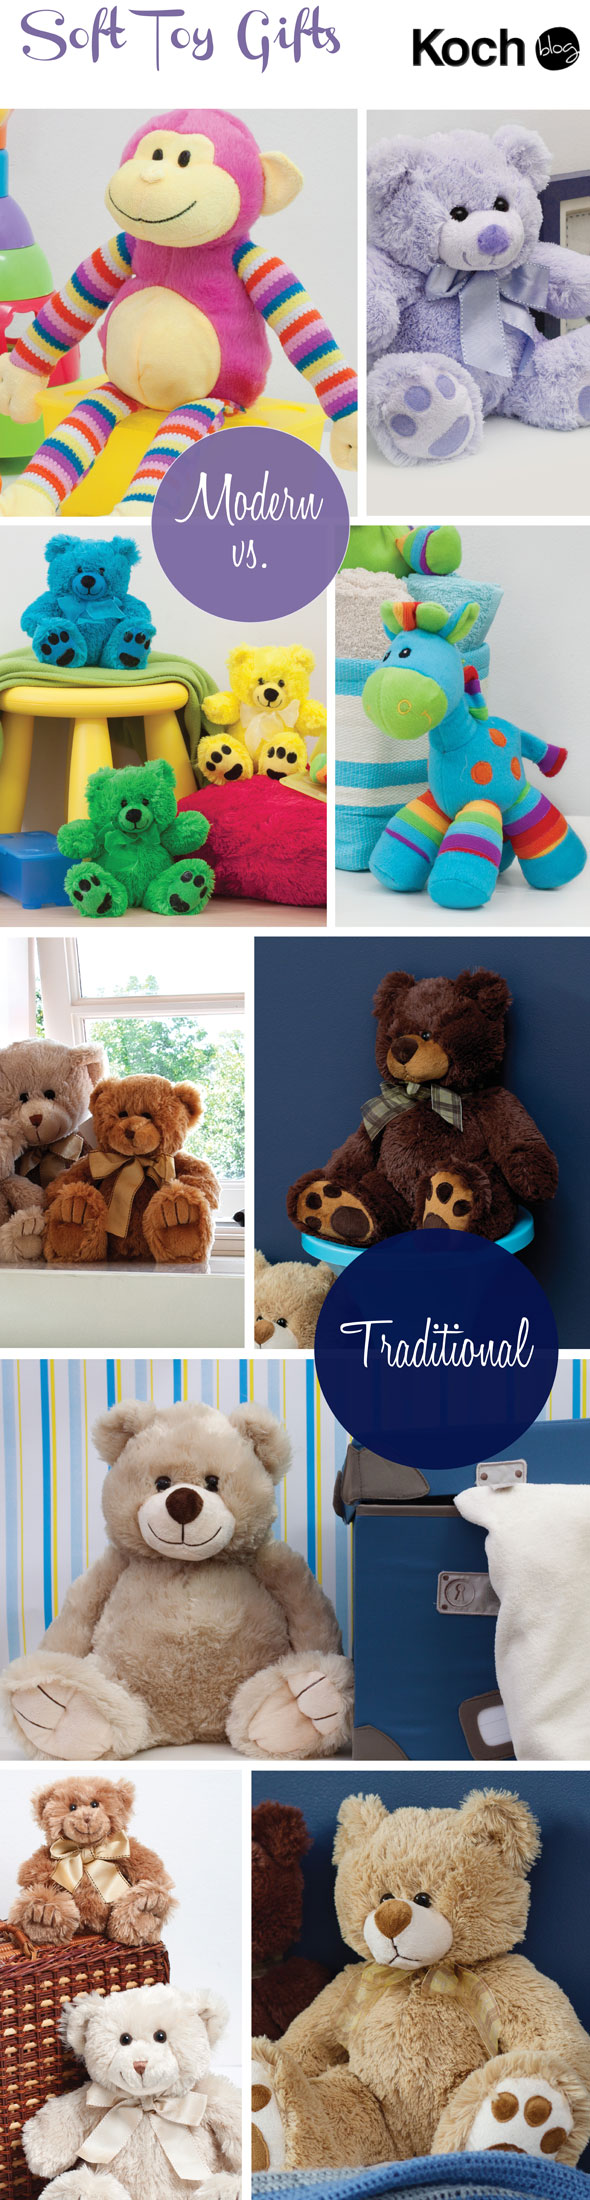 Non chocolate easter gifts for kids the koch blog teddy bears for sale modern vs traditional negle Images